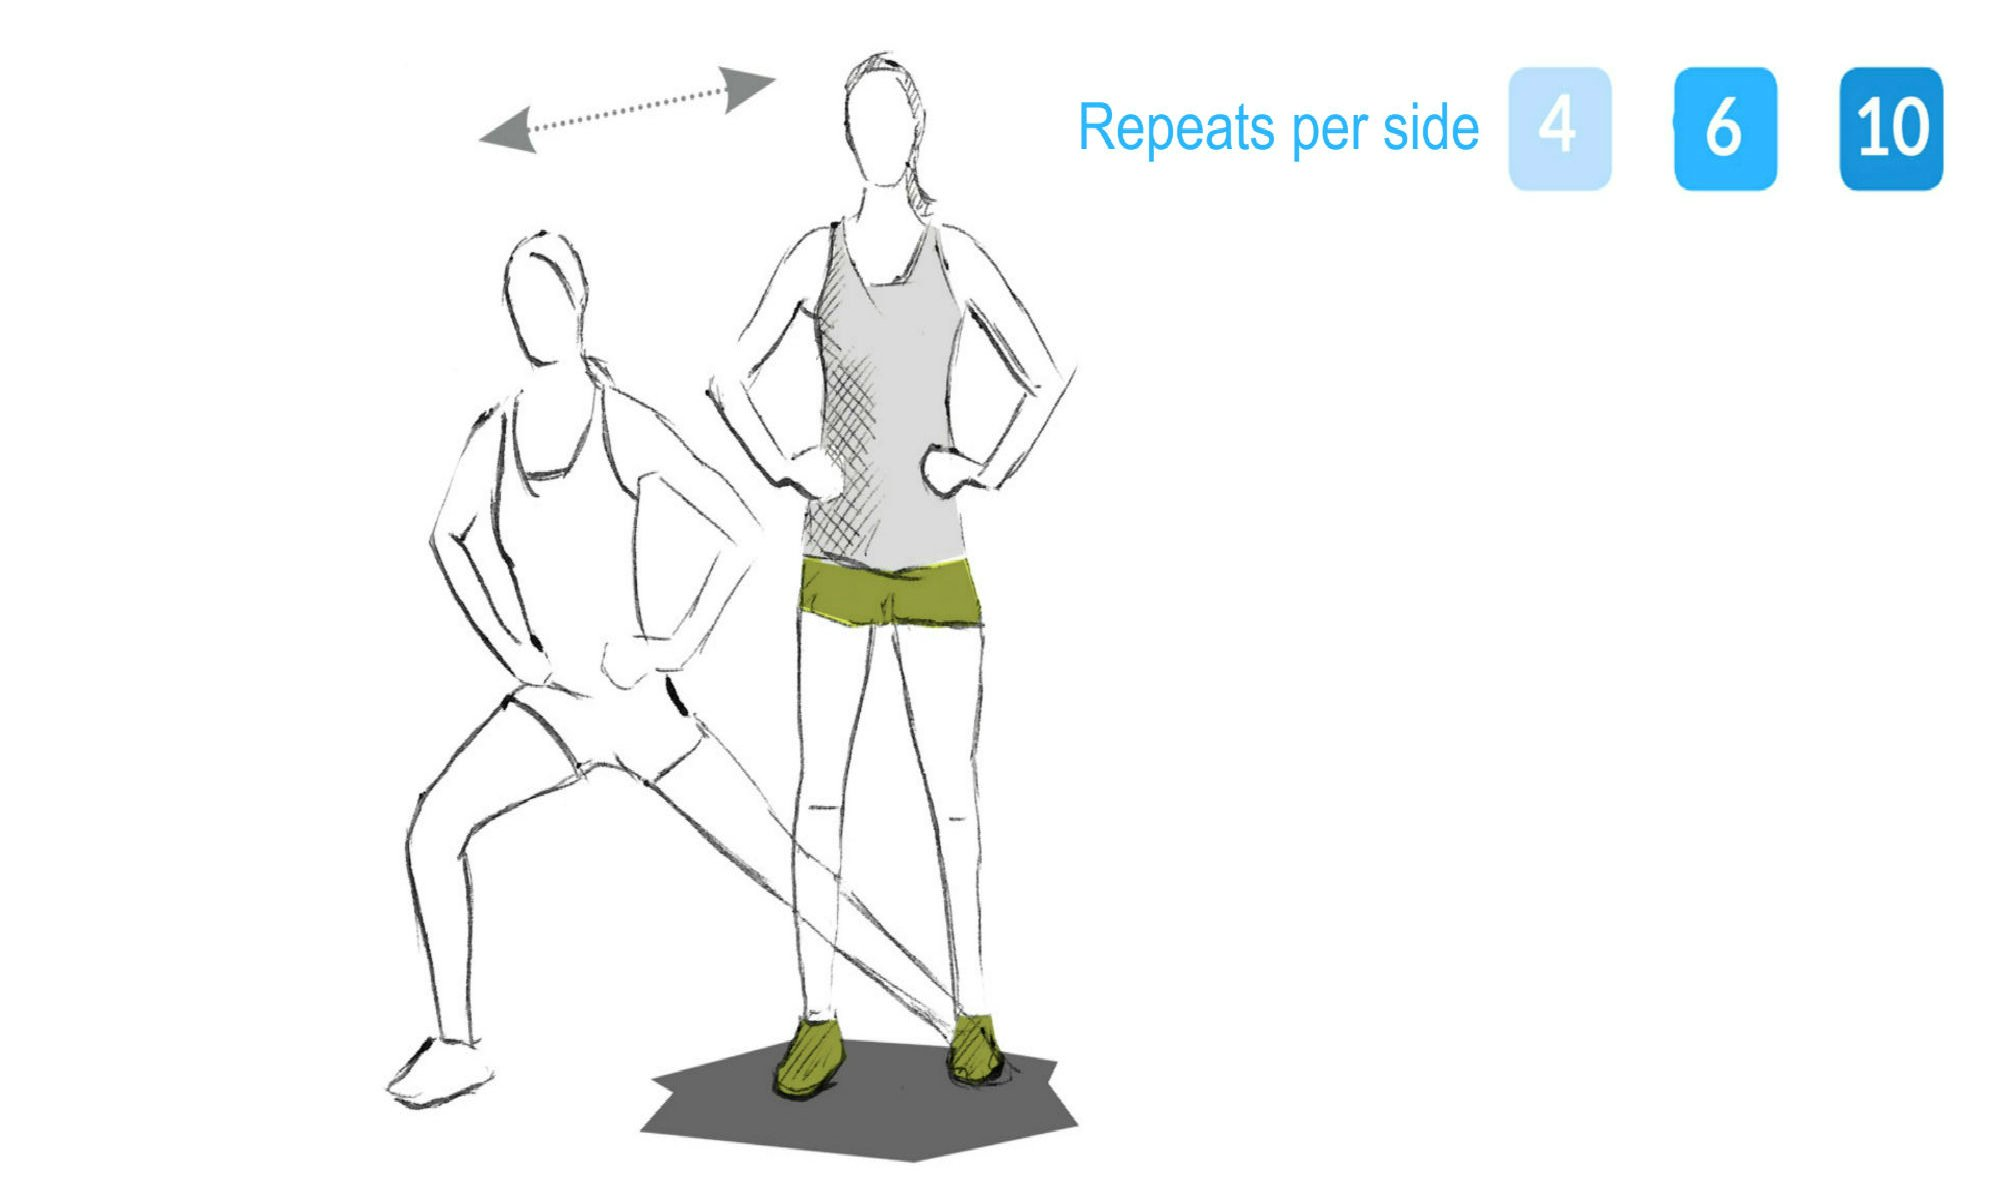 The sideways lunge exercise.